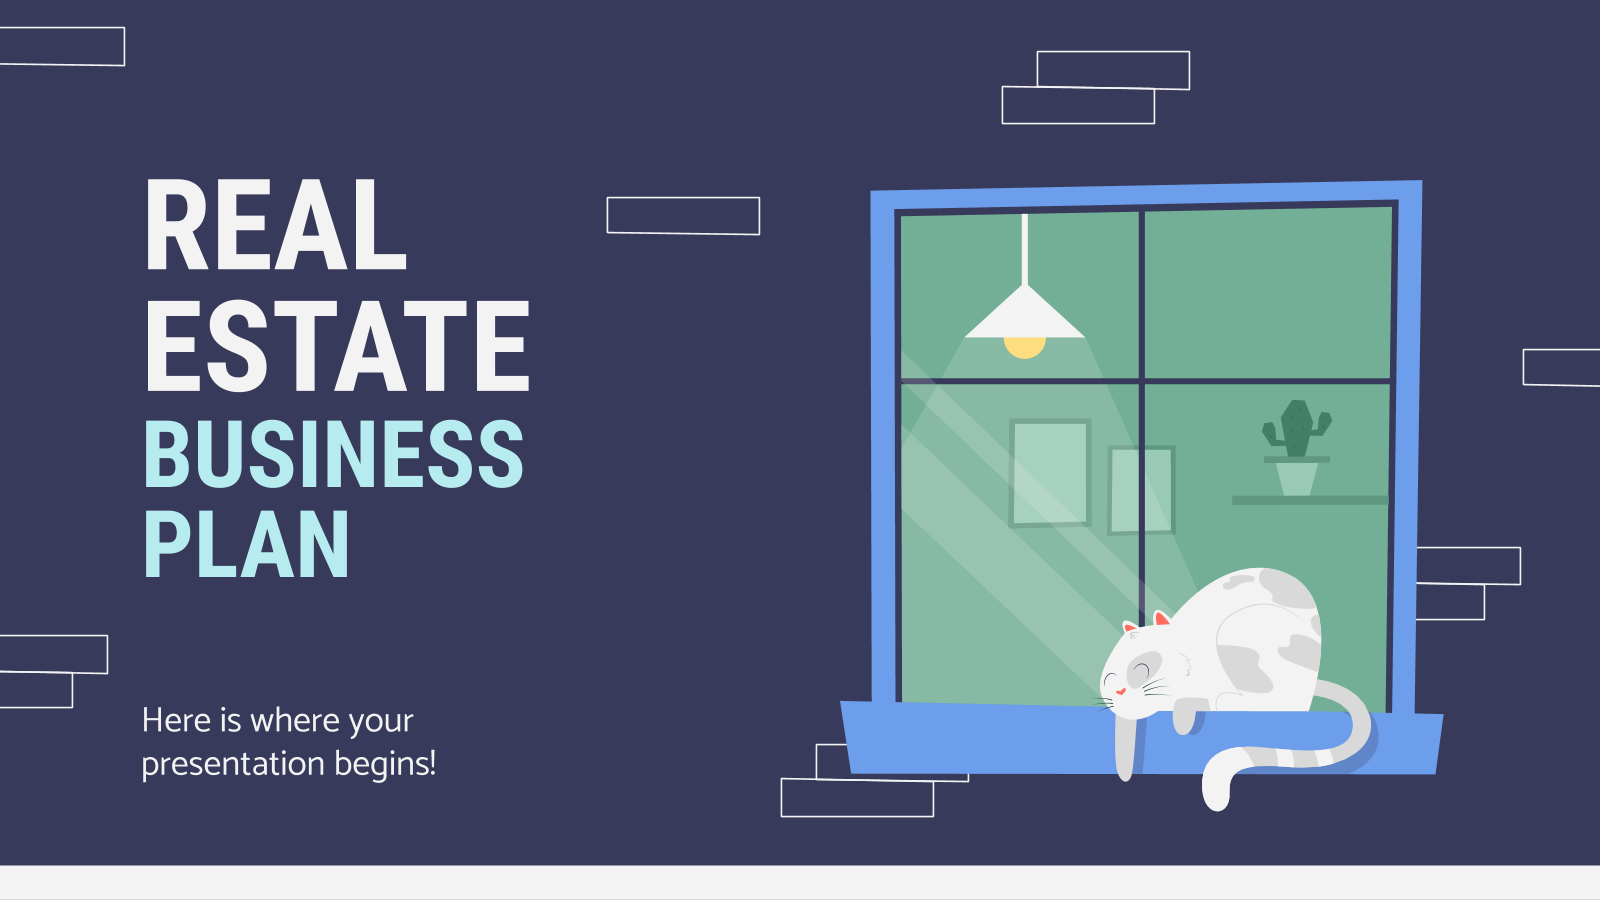 Real Estate Business Plan presentation template